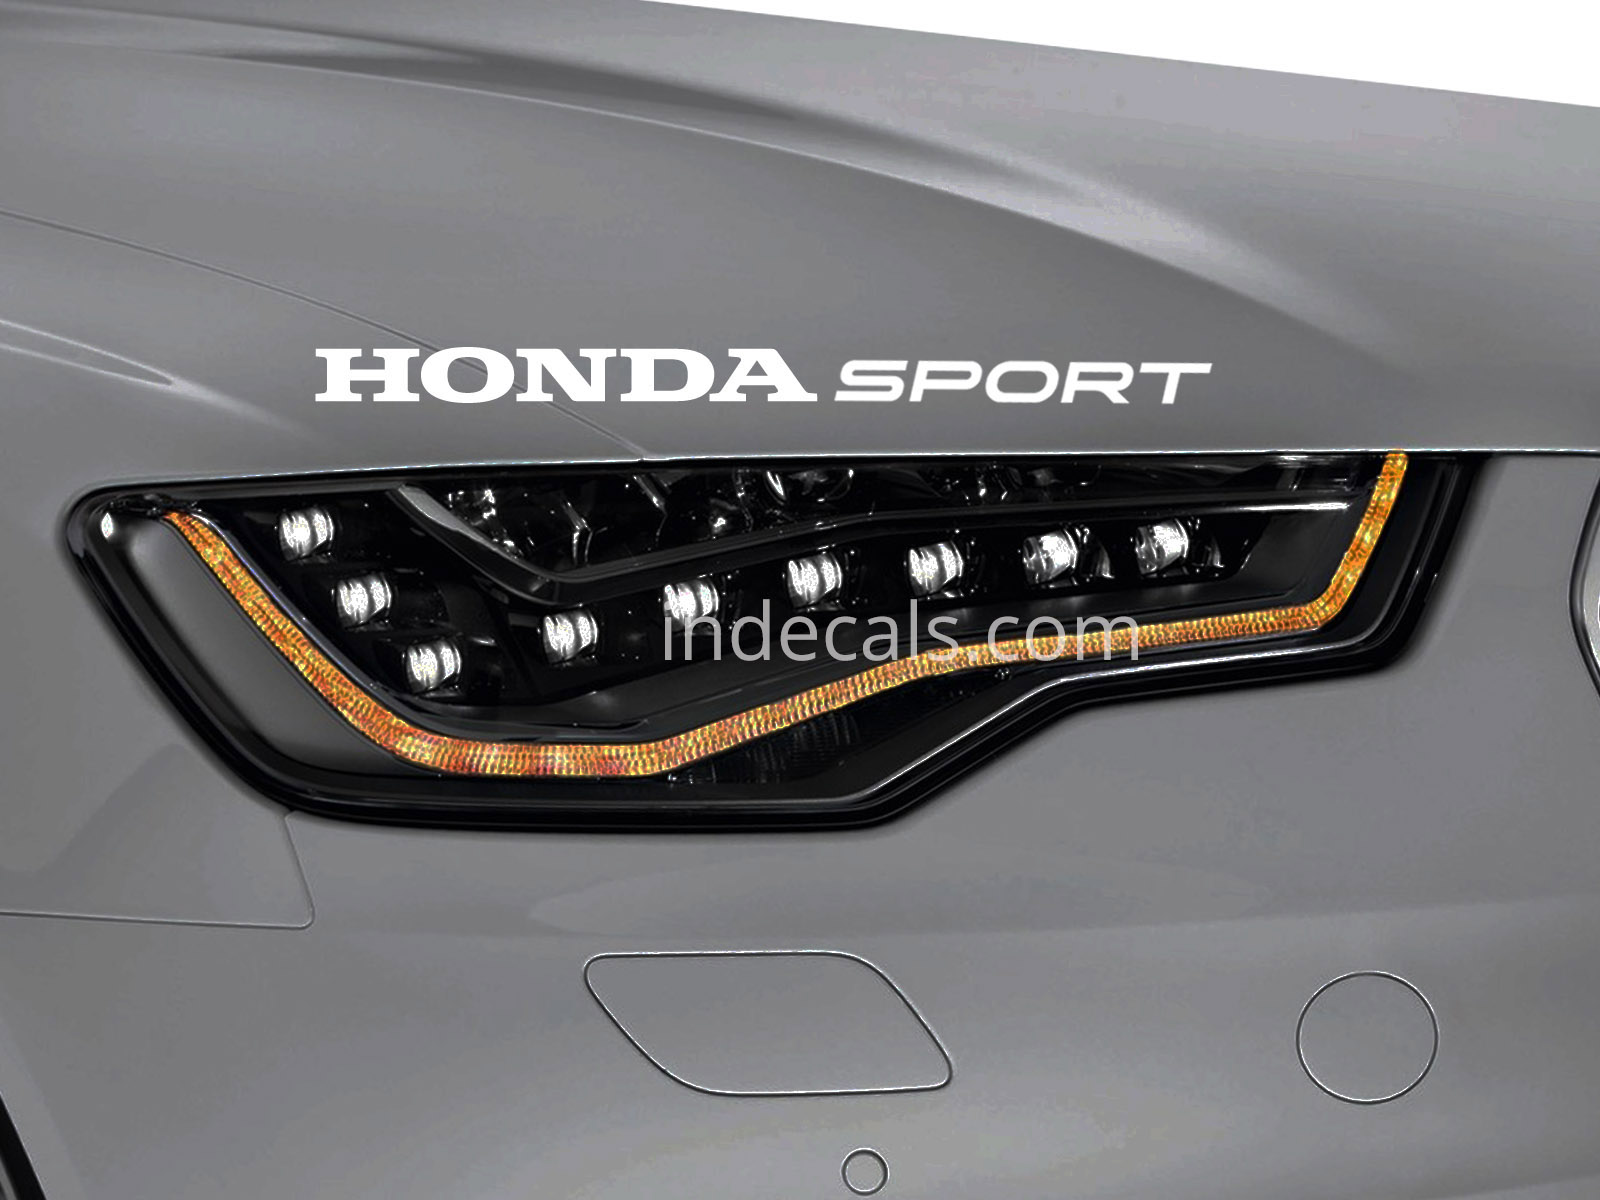 1 x Honda Sport Sticker for Eyebrow - White